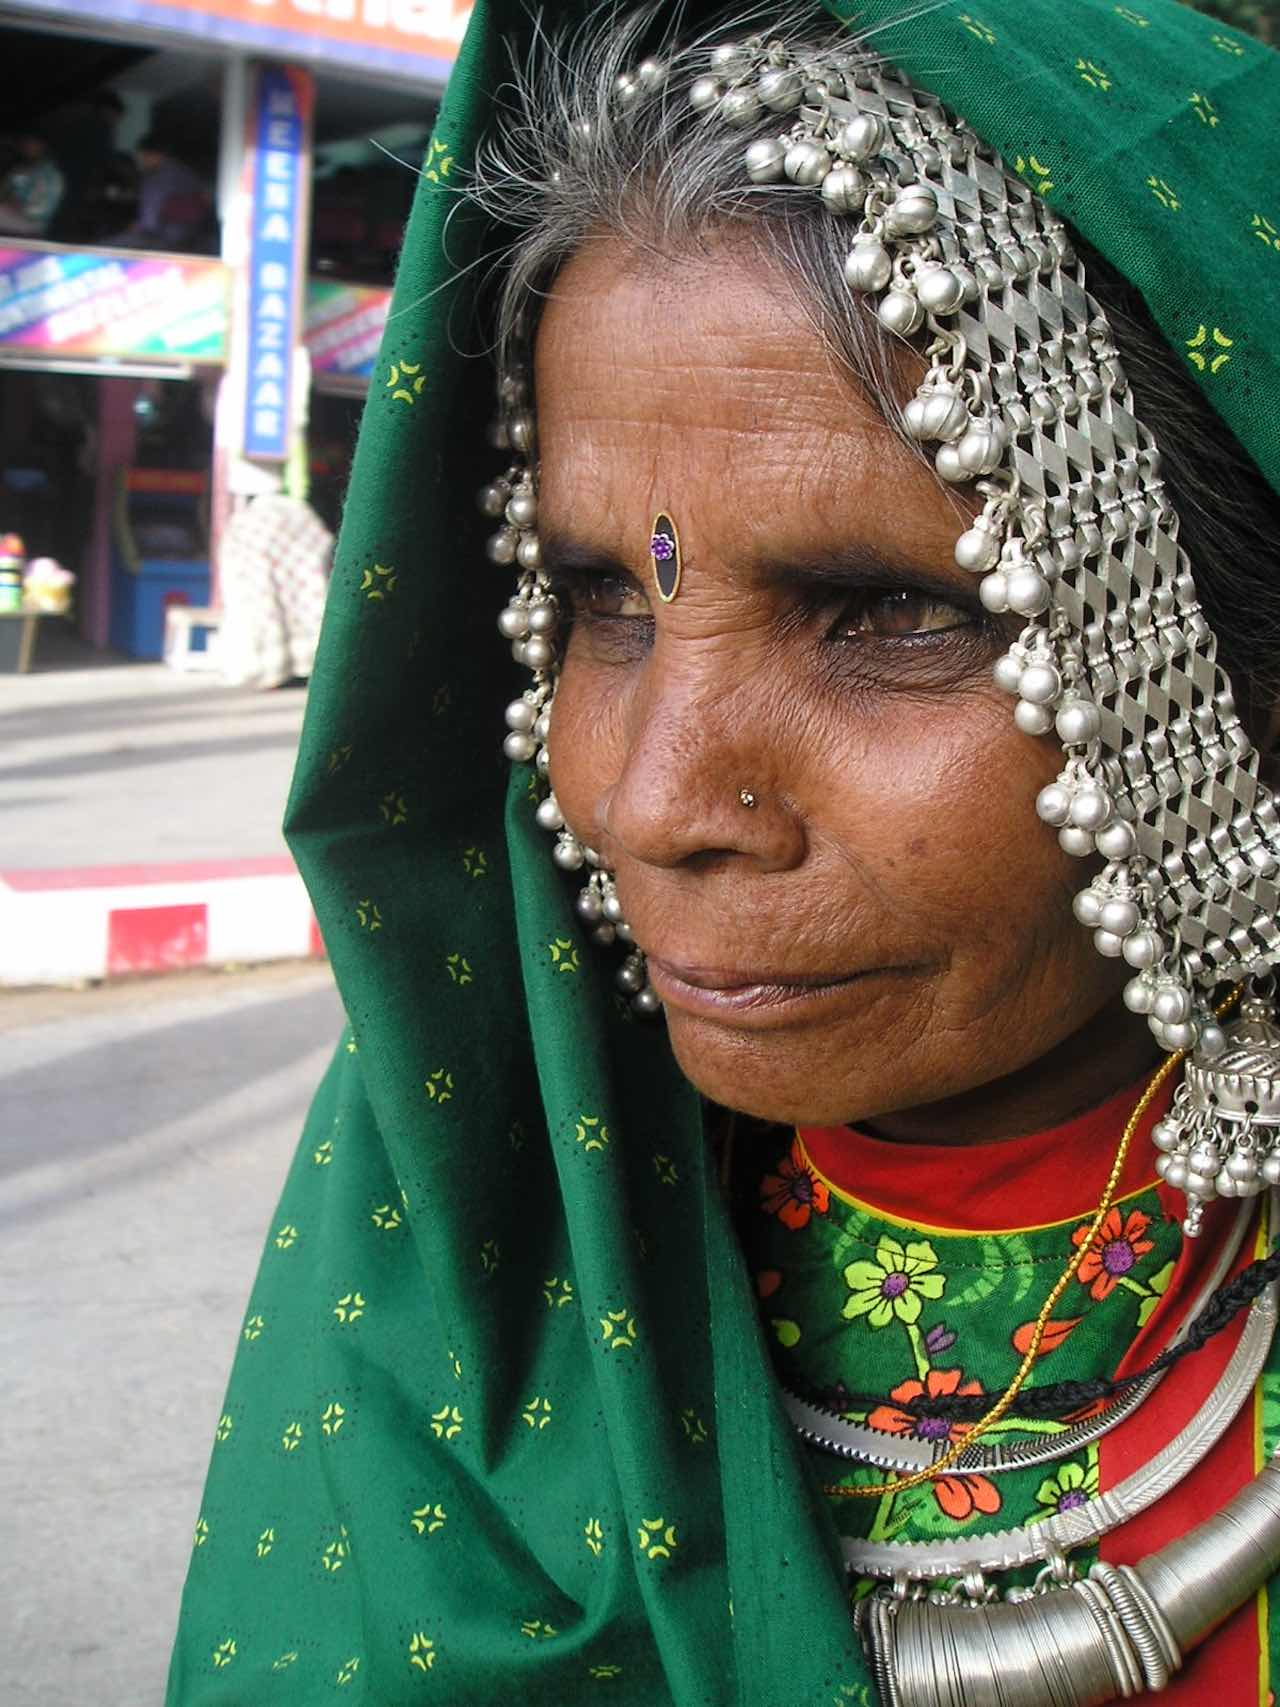 a woman dressed in traditional Indian dress